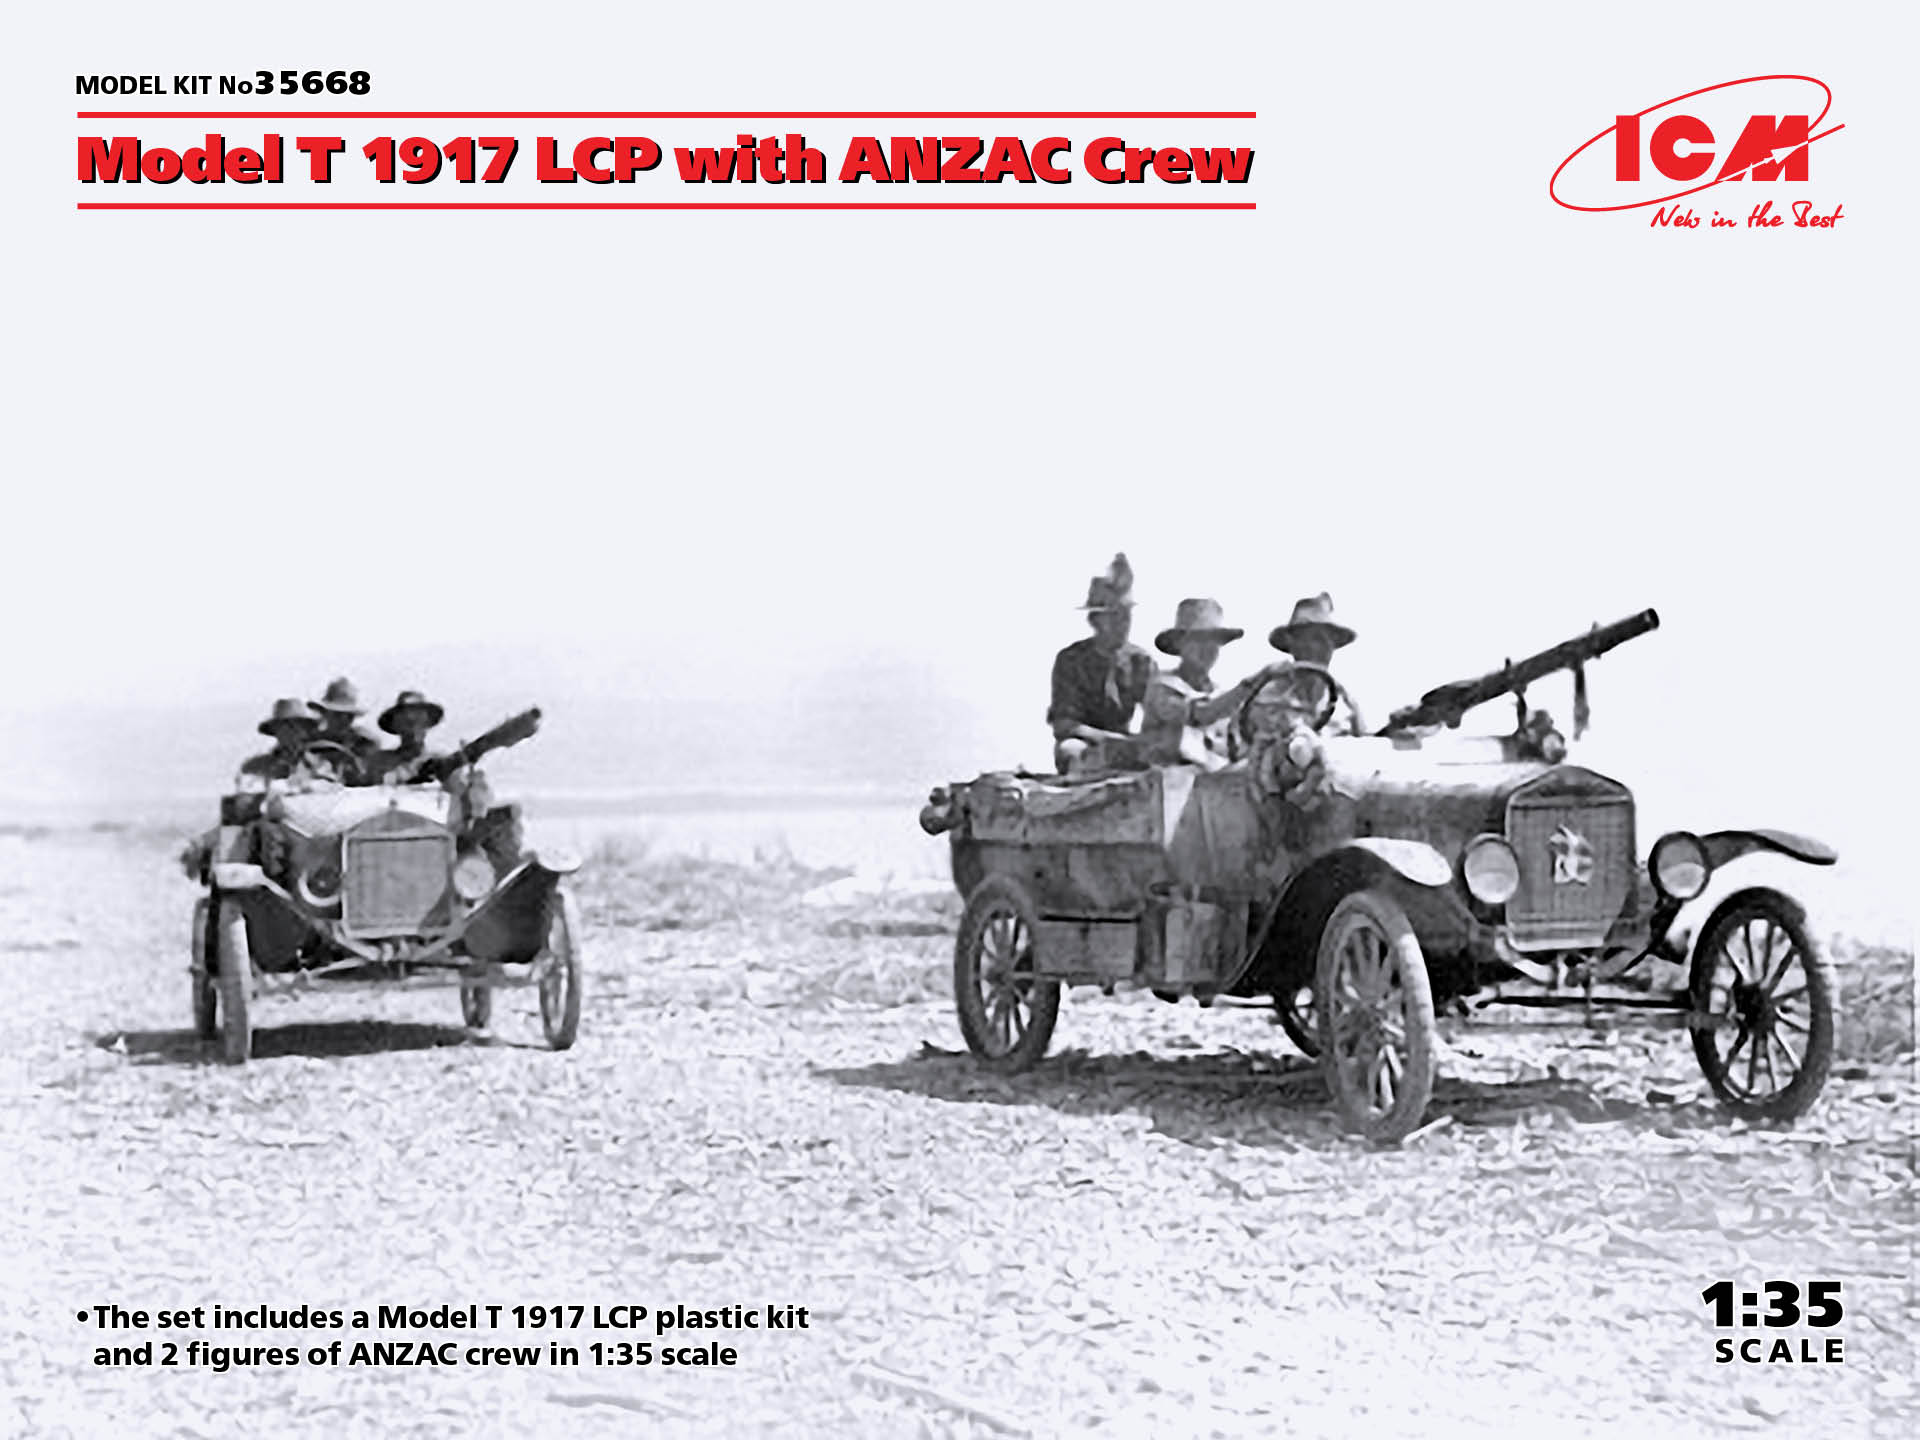 ICM Model T 1917 LCP with ANZAC Crew